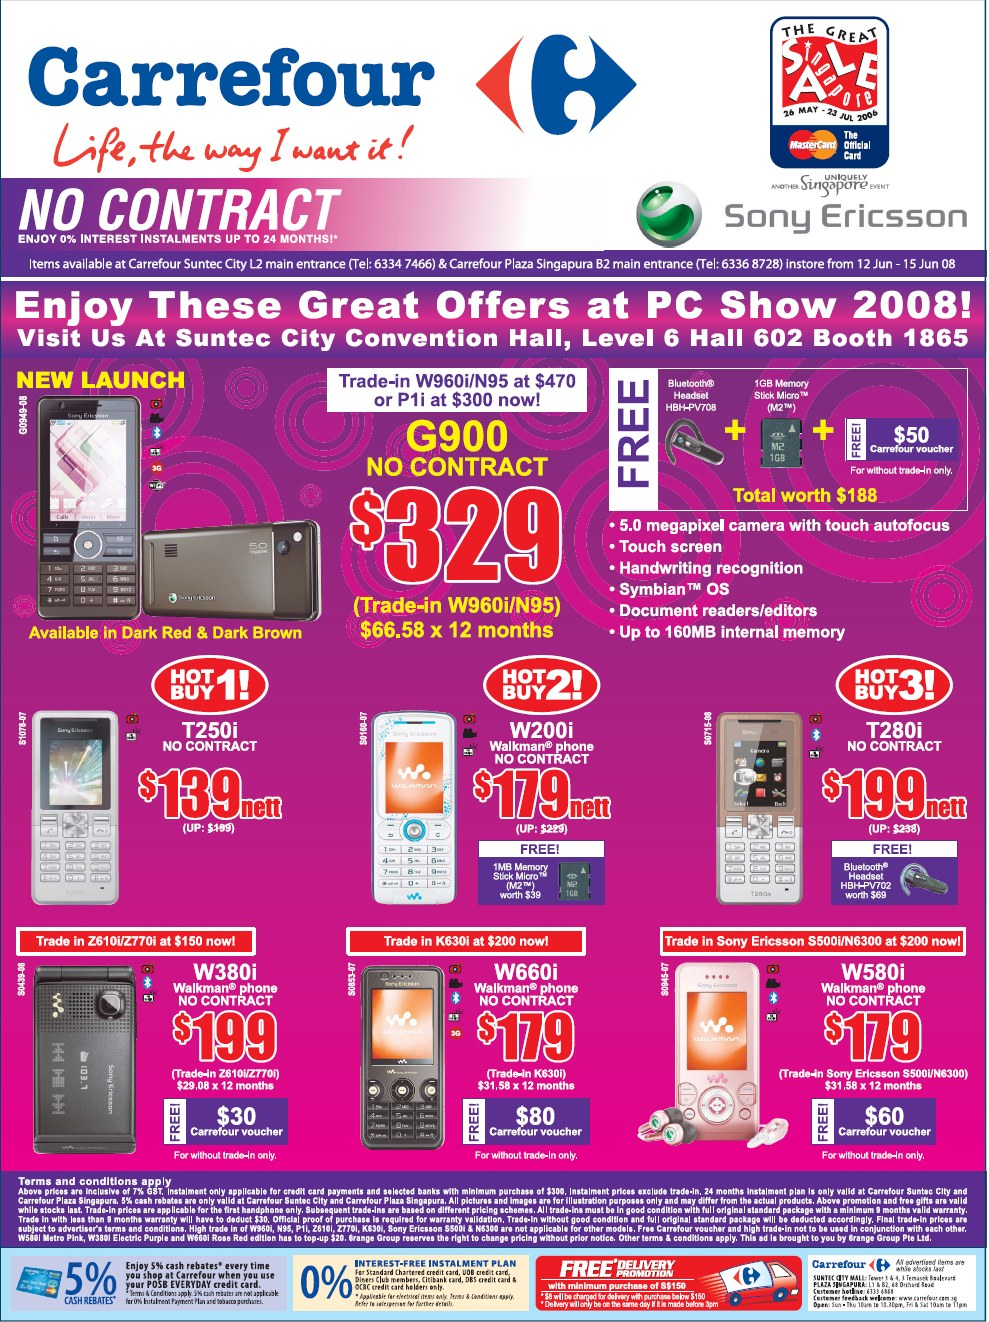 PC Show 2008 price list image brochure of Carrefour Phones